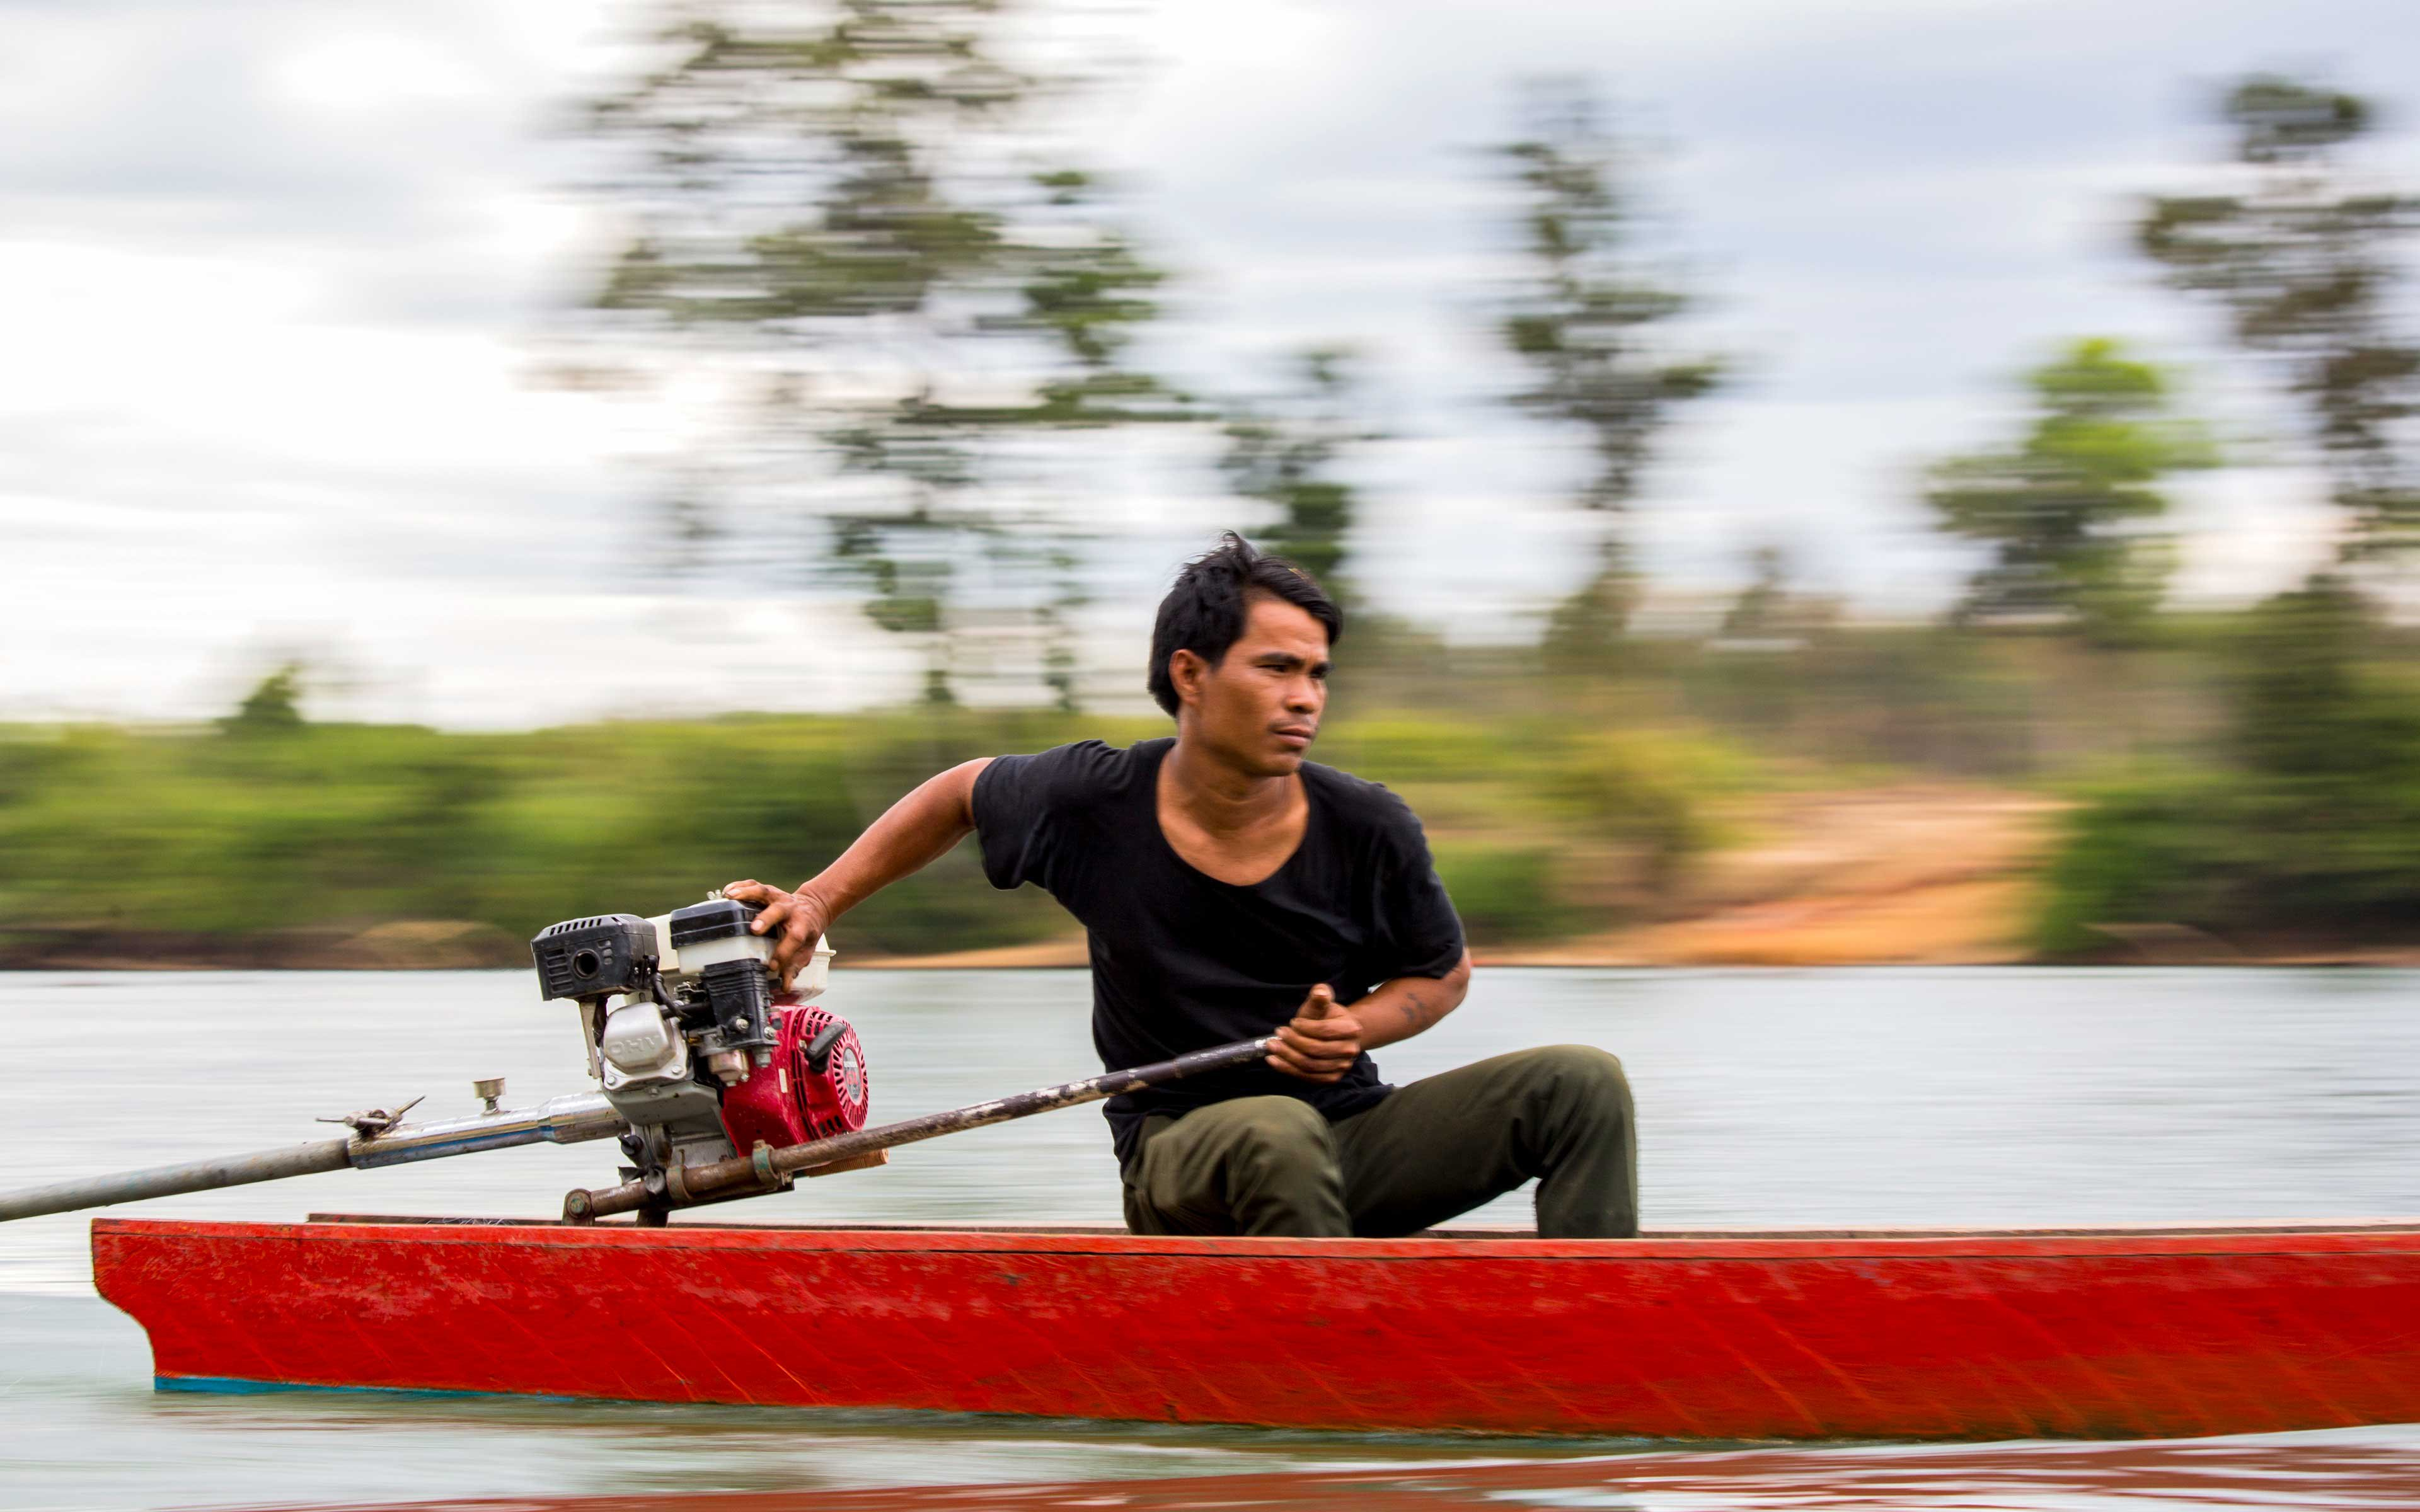 """Romas Shyob pilots his boat on the Sesan near his village, Padol. He says the participation of women in protecting the forest and guiding the community is essential. """"When there is an opportunity to send people to represent the community, we send women,"""" he says."""